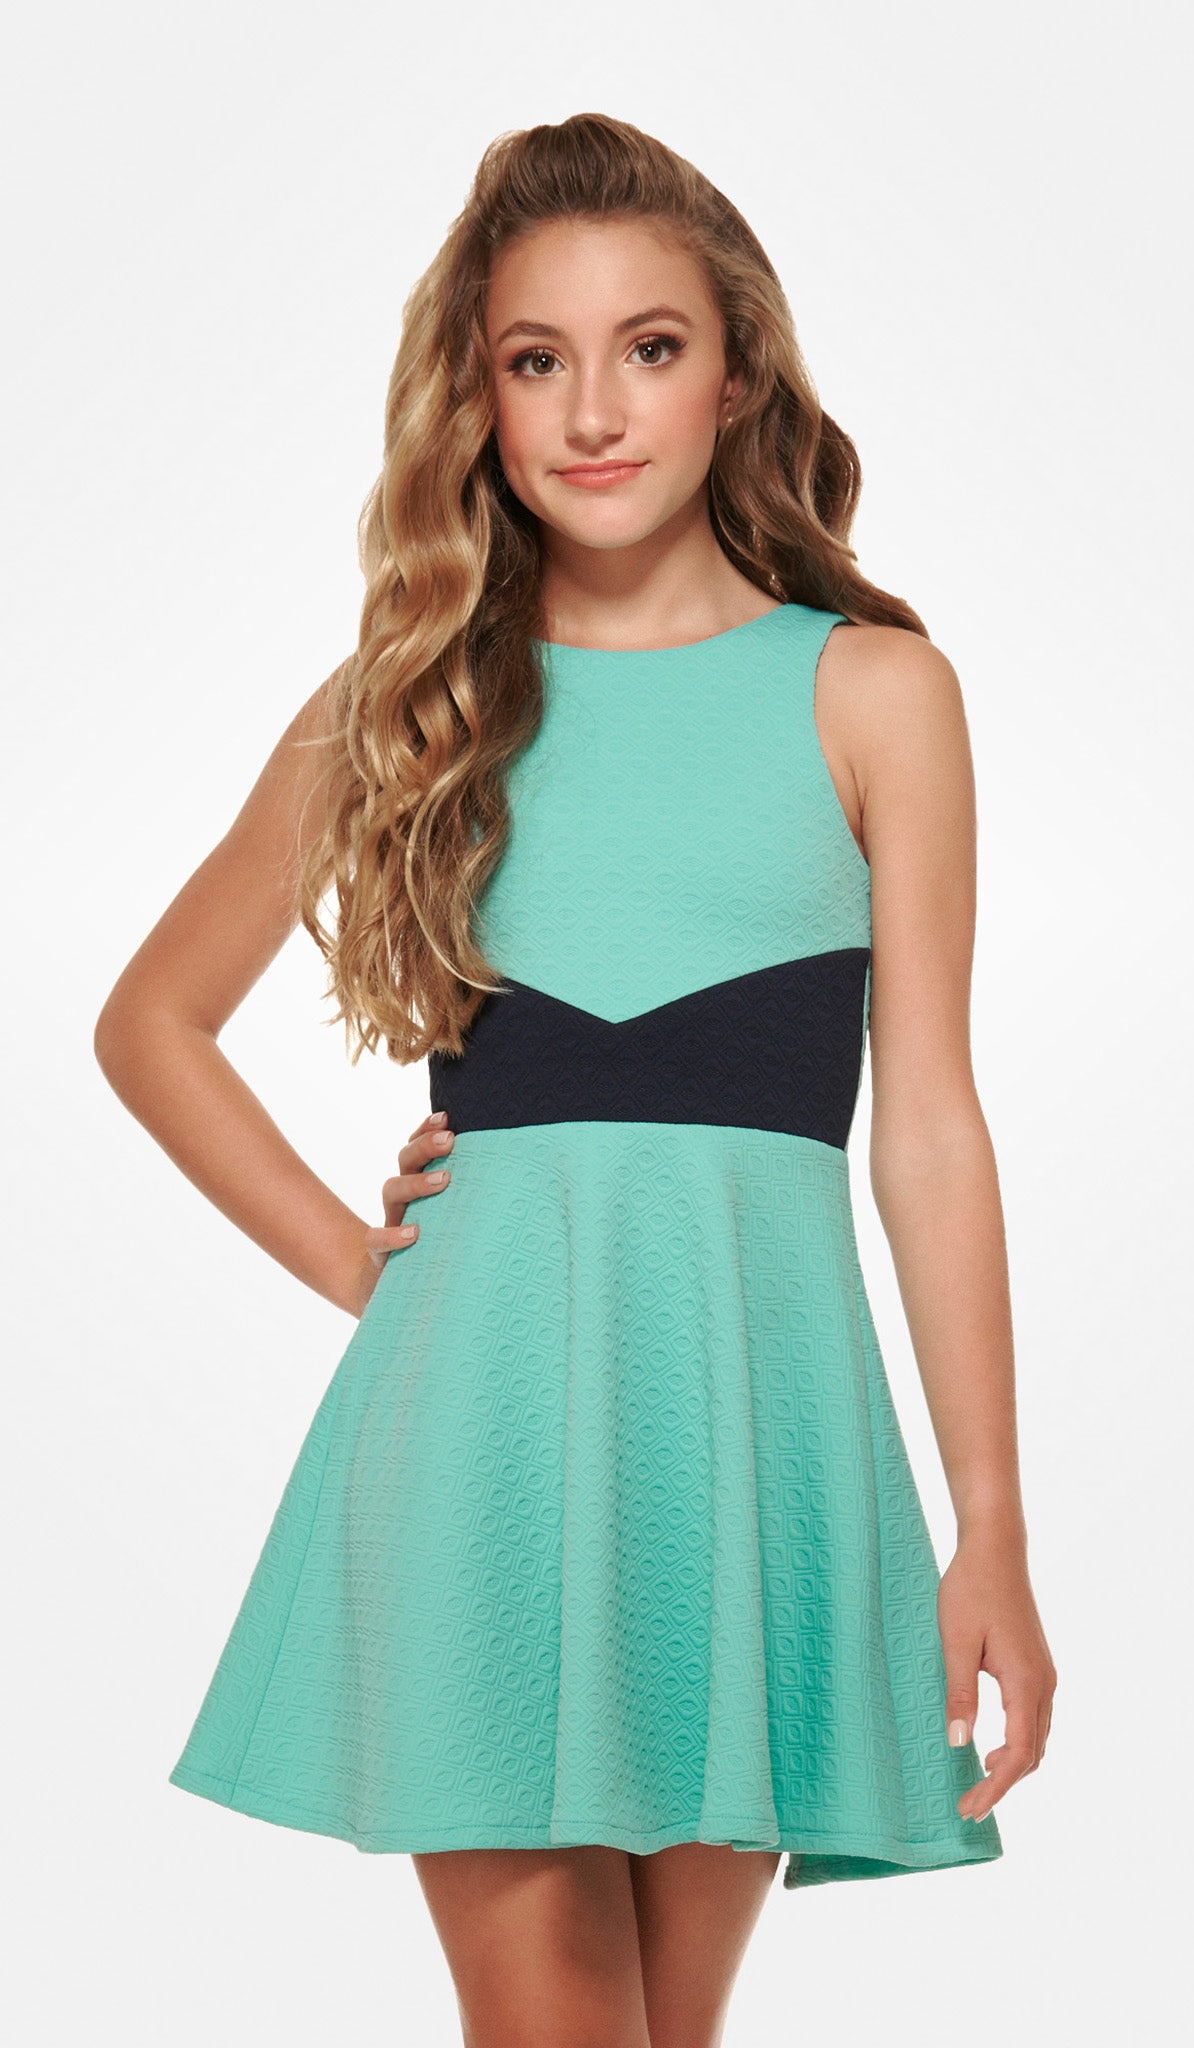 THE LILY DRESS - Sallymiller.com - [variant title] - | Event & Party Dresses for Tween Girls & Juniors | Weddings Dresses, Bat Mitzvah Dresses, Sweet Sixteen Dresses, Graduation Dresses, Birthday Party Dresses, Bar Mitzvah Dresses, Cotillion Dresses